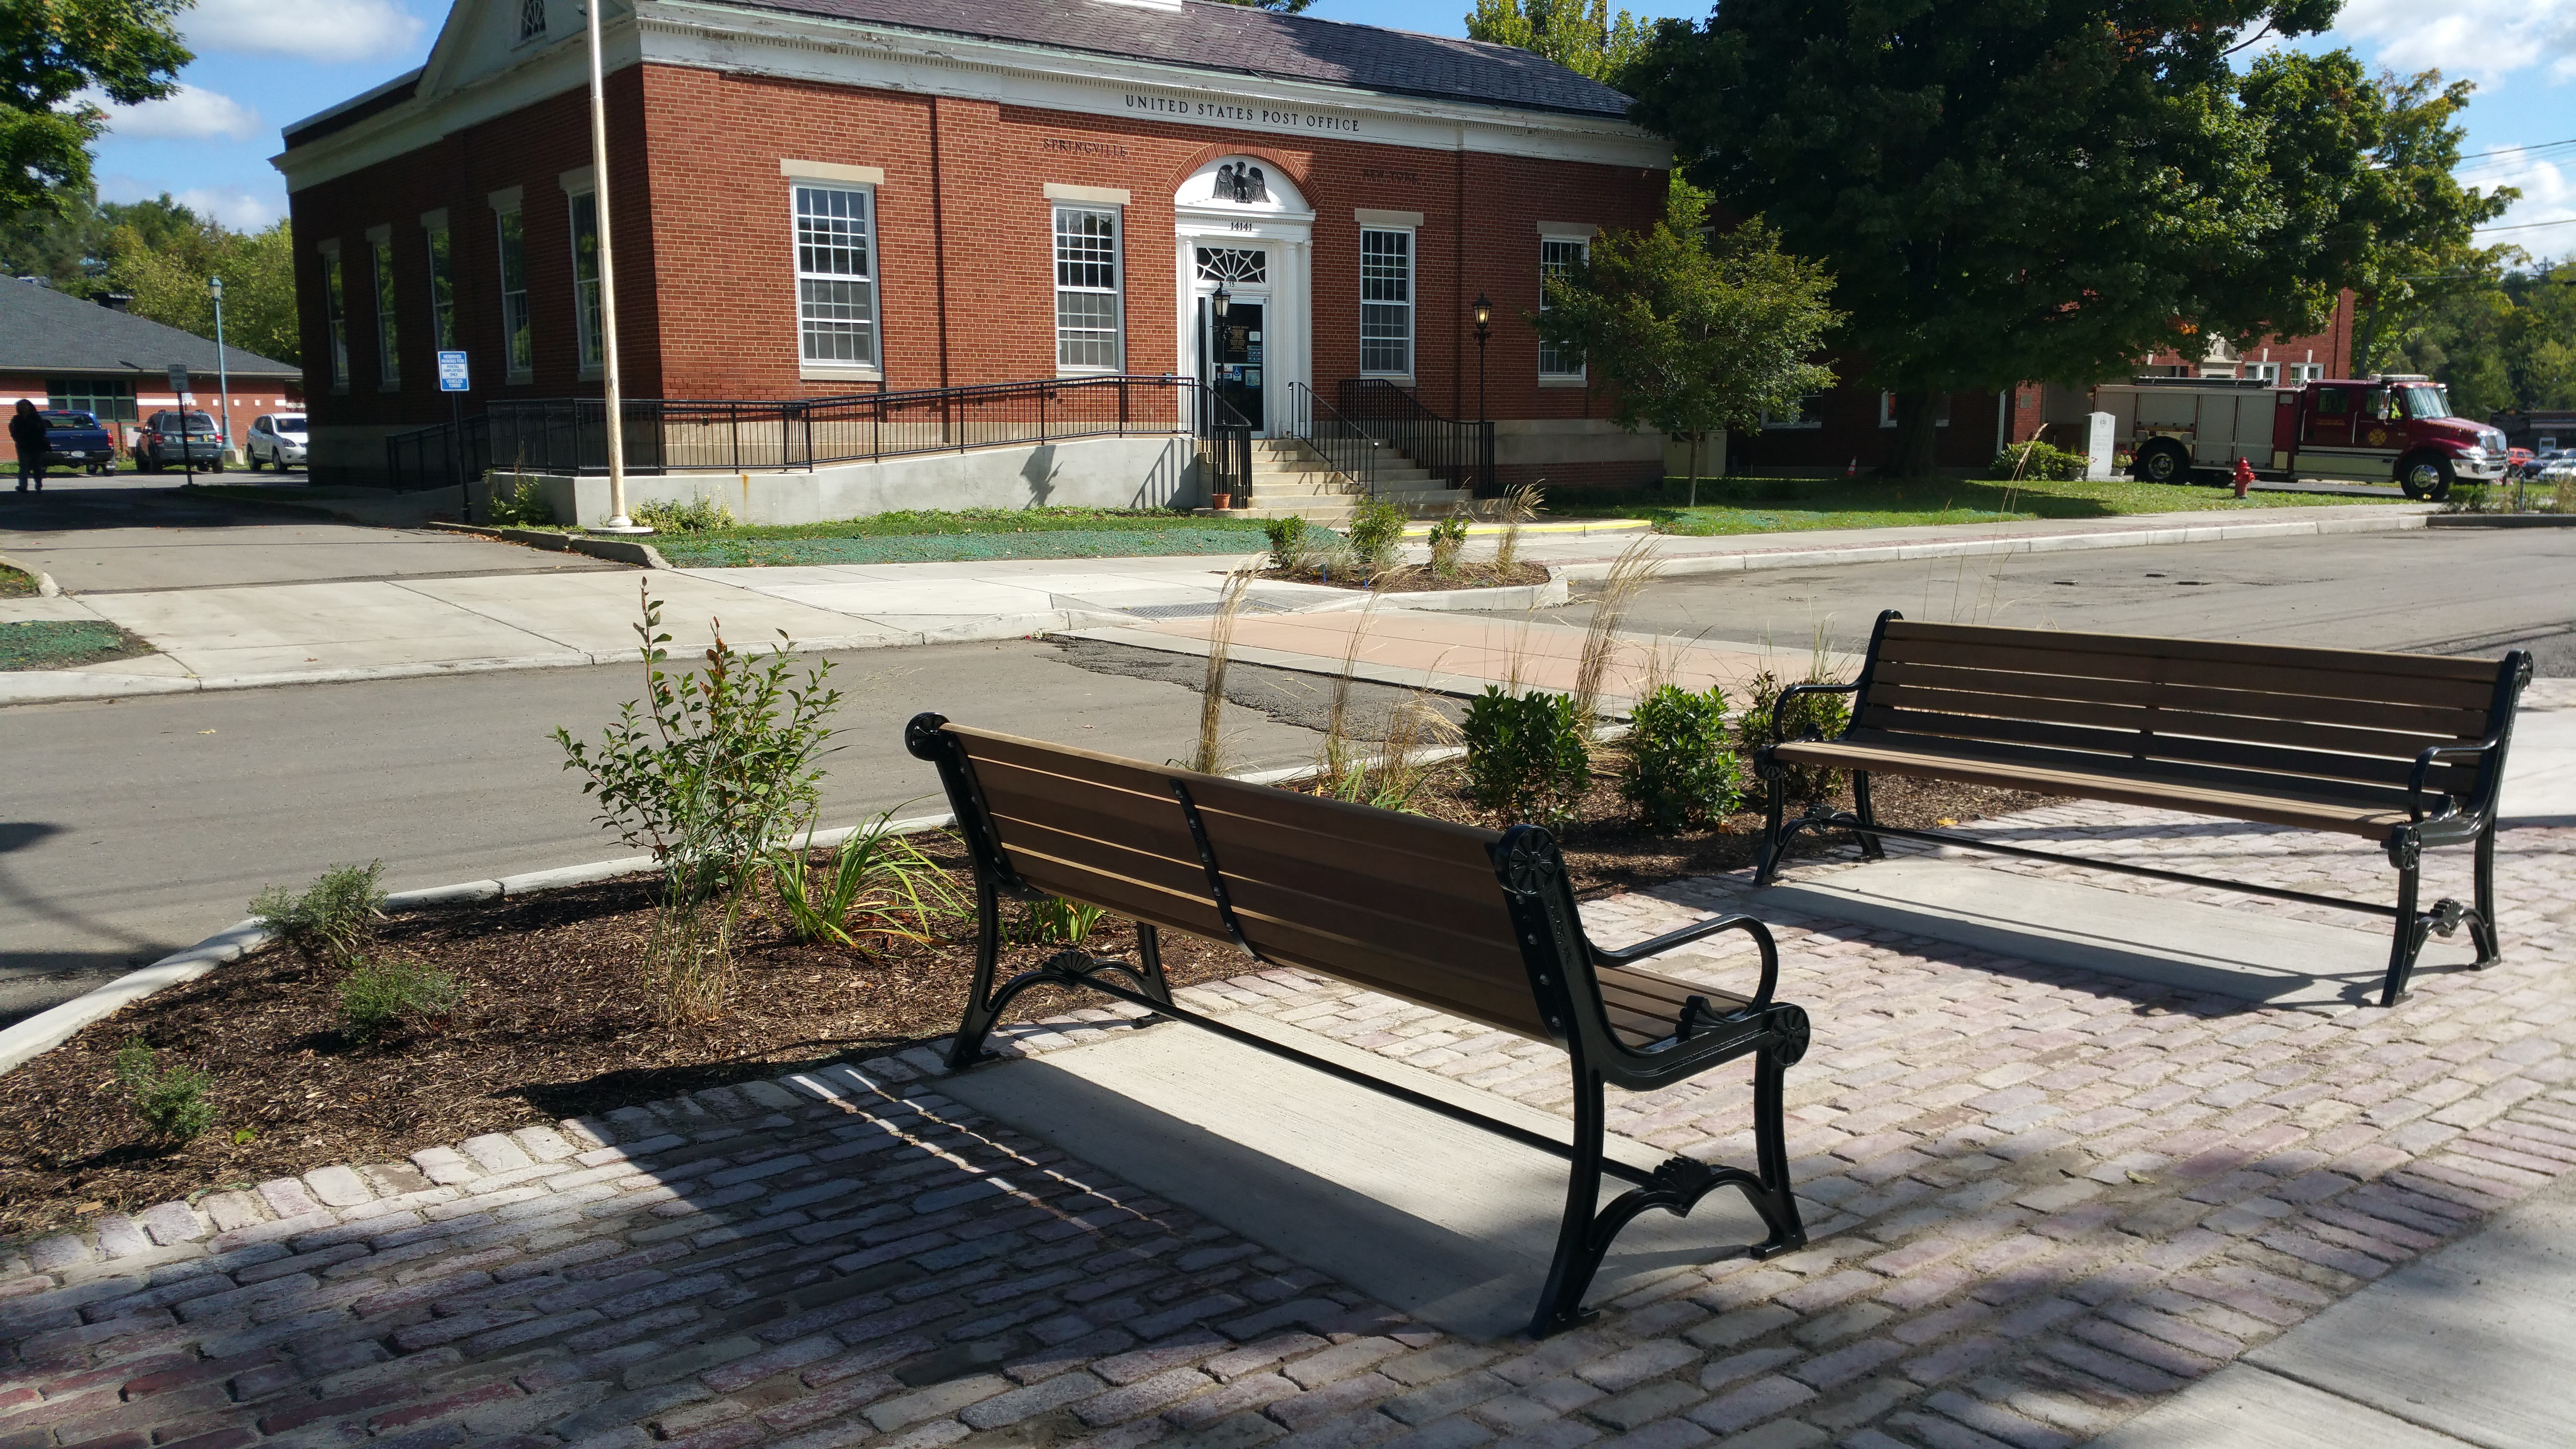 Village of Springville - 2015 - Smart Growth project - Streetscape Improvements